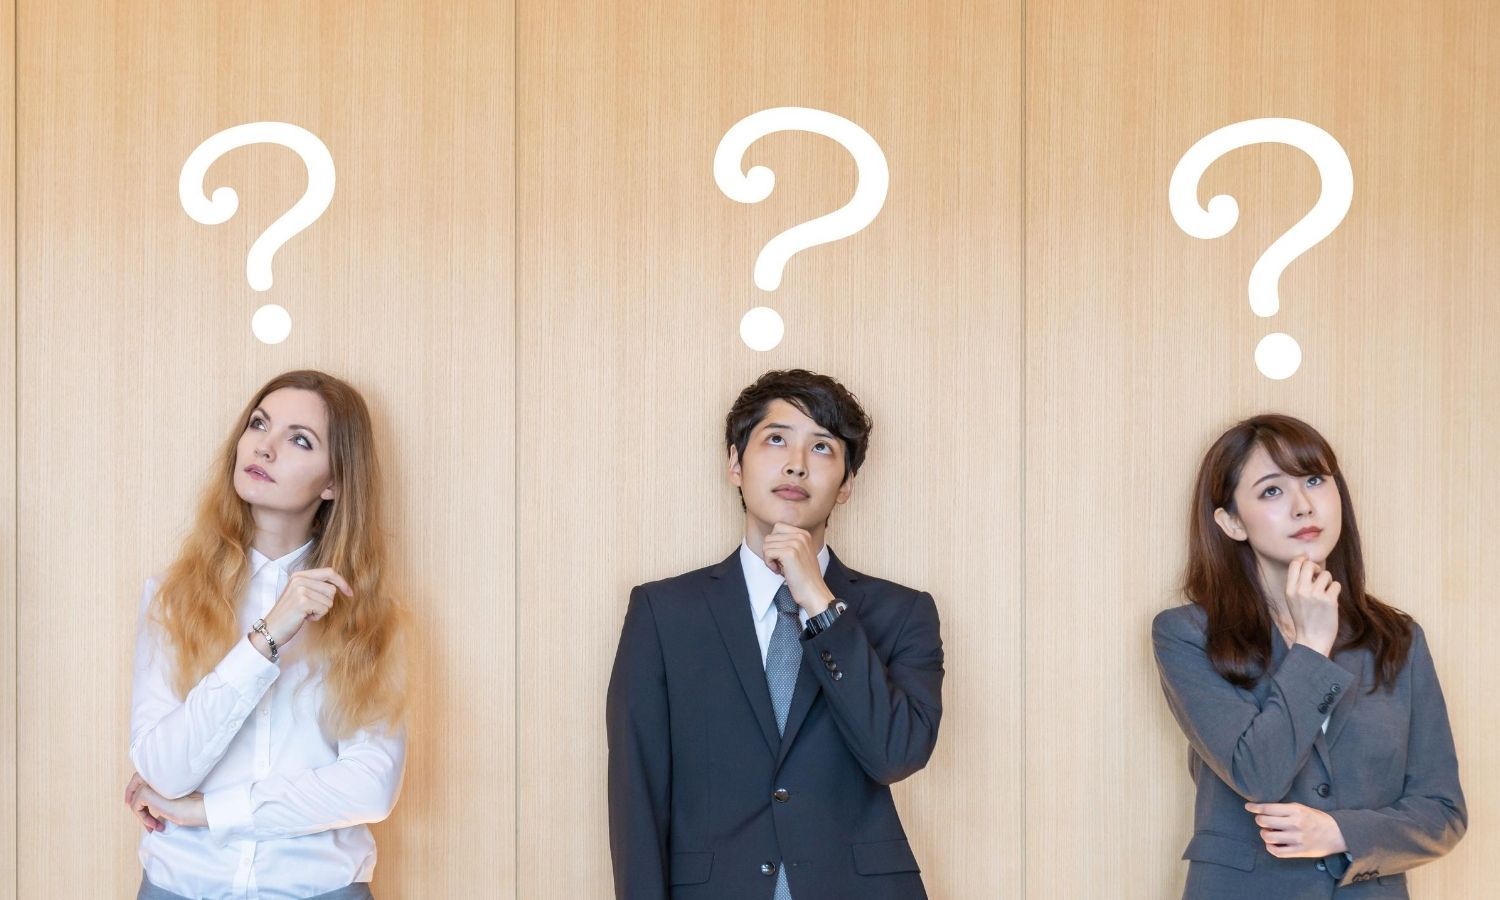 Should You Match Your Entrepreneurial Personality With Your Business Startup Idea?